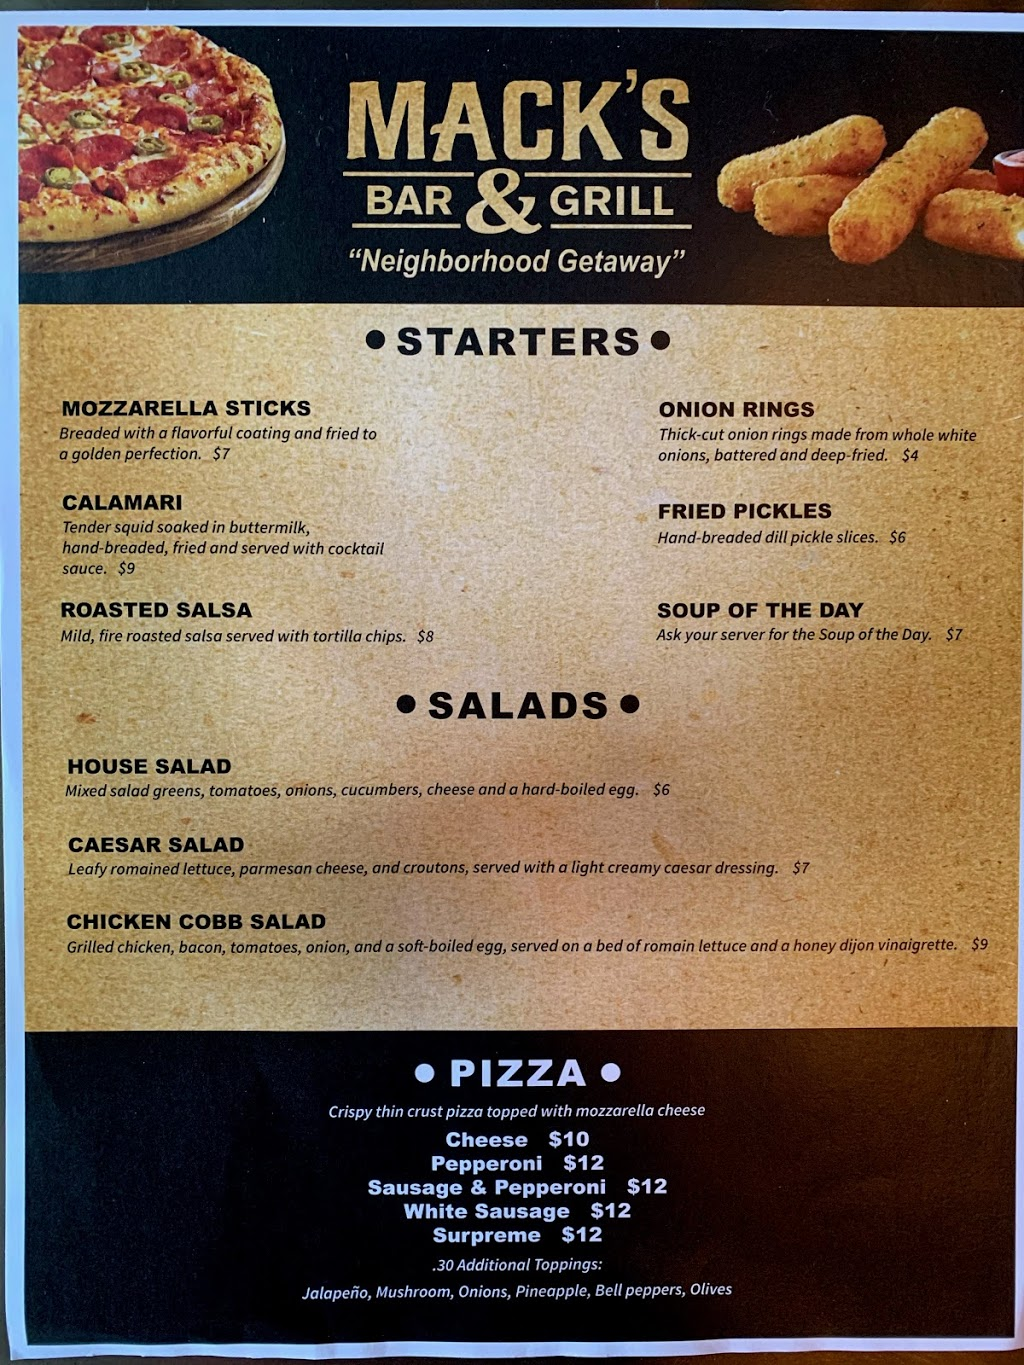 Macks Bar and Grill   restaurant   5513 Pershing Ave, St. Louis, MO 63112, USA   3143548436 OR +1 314-354-8436